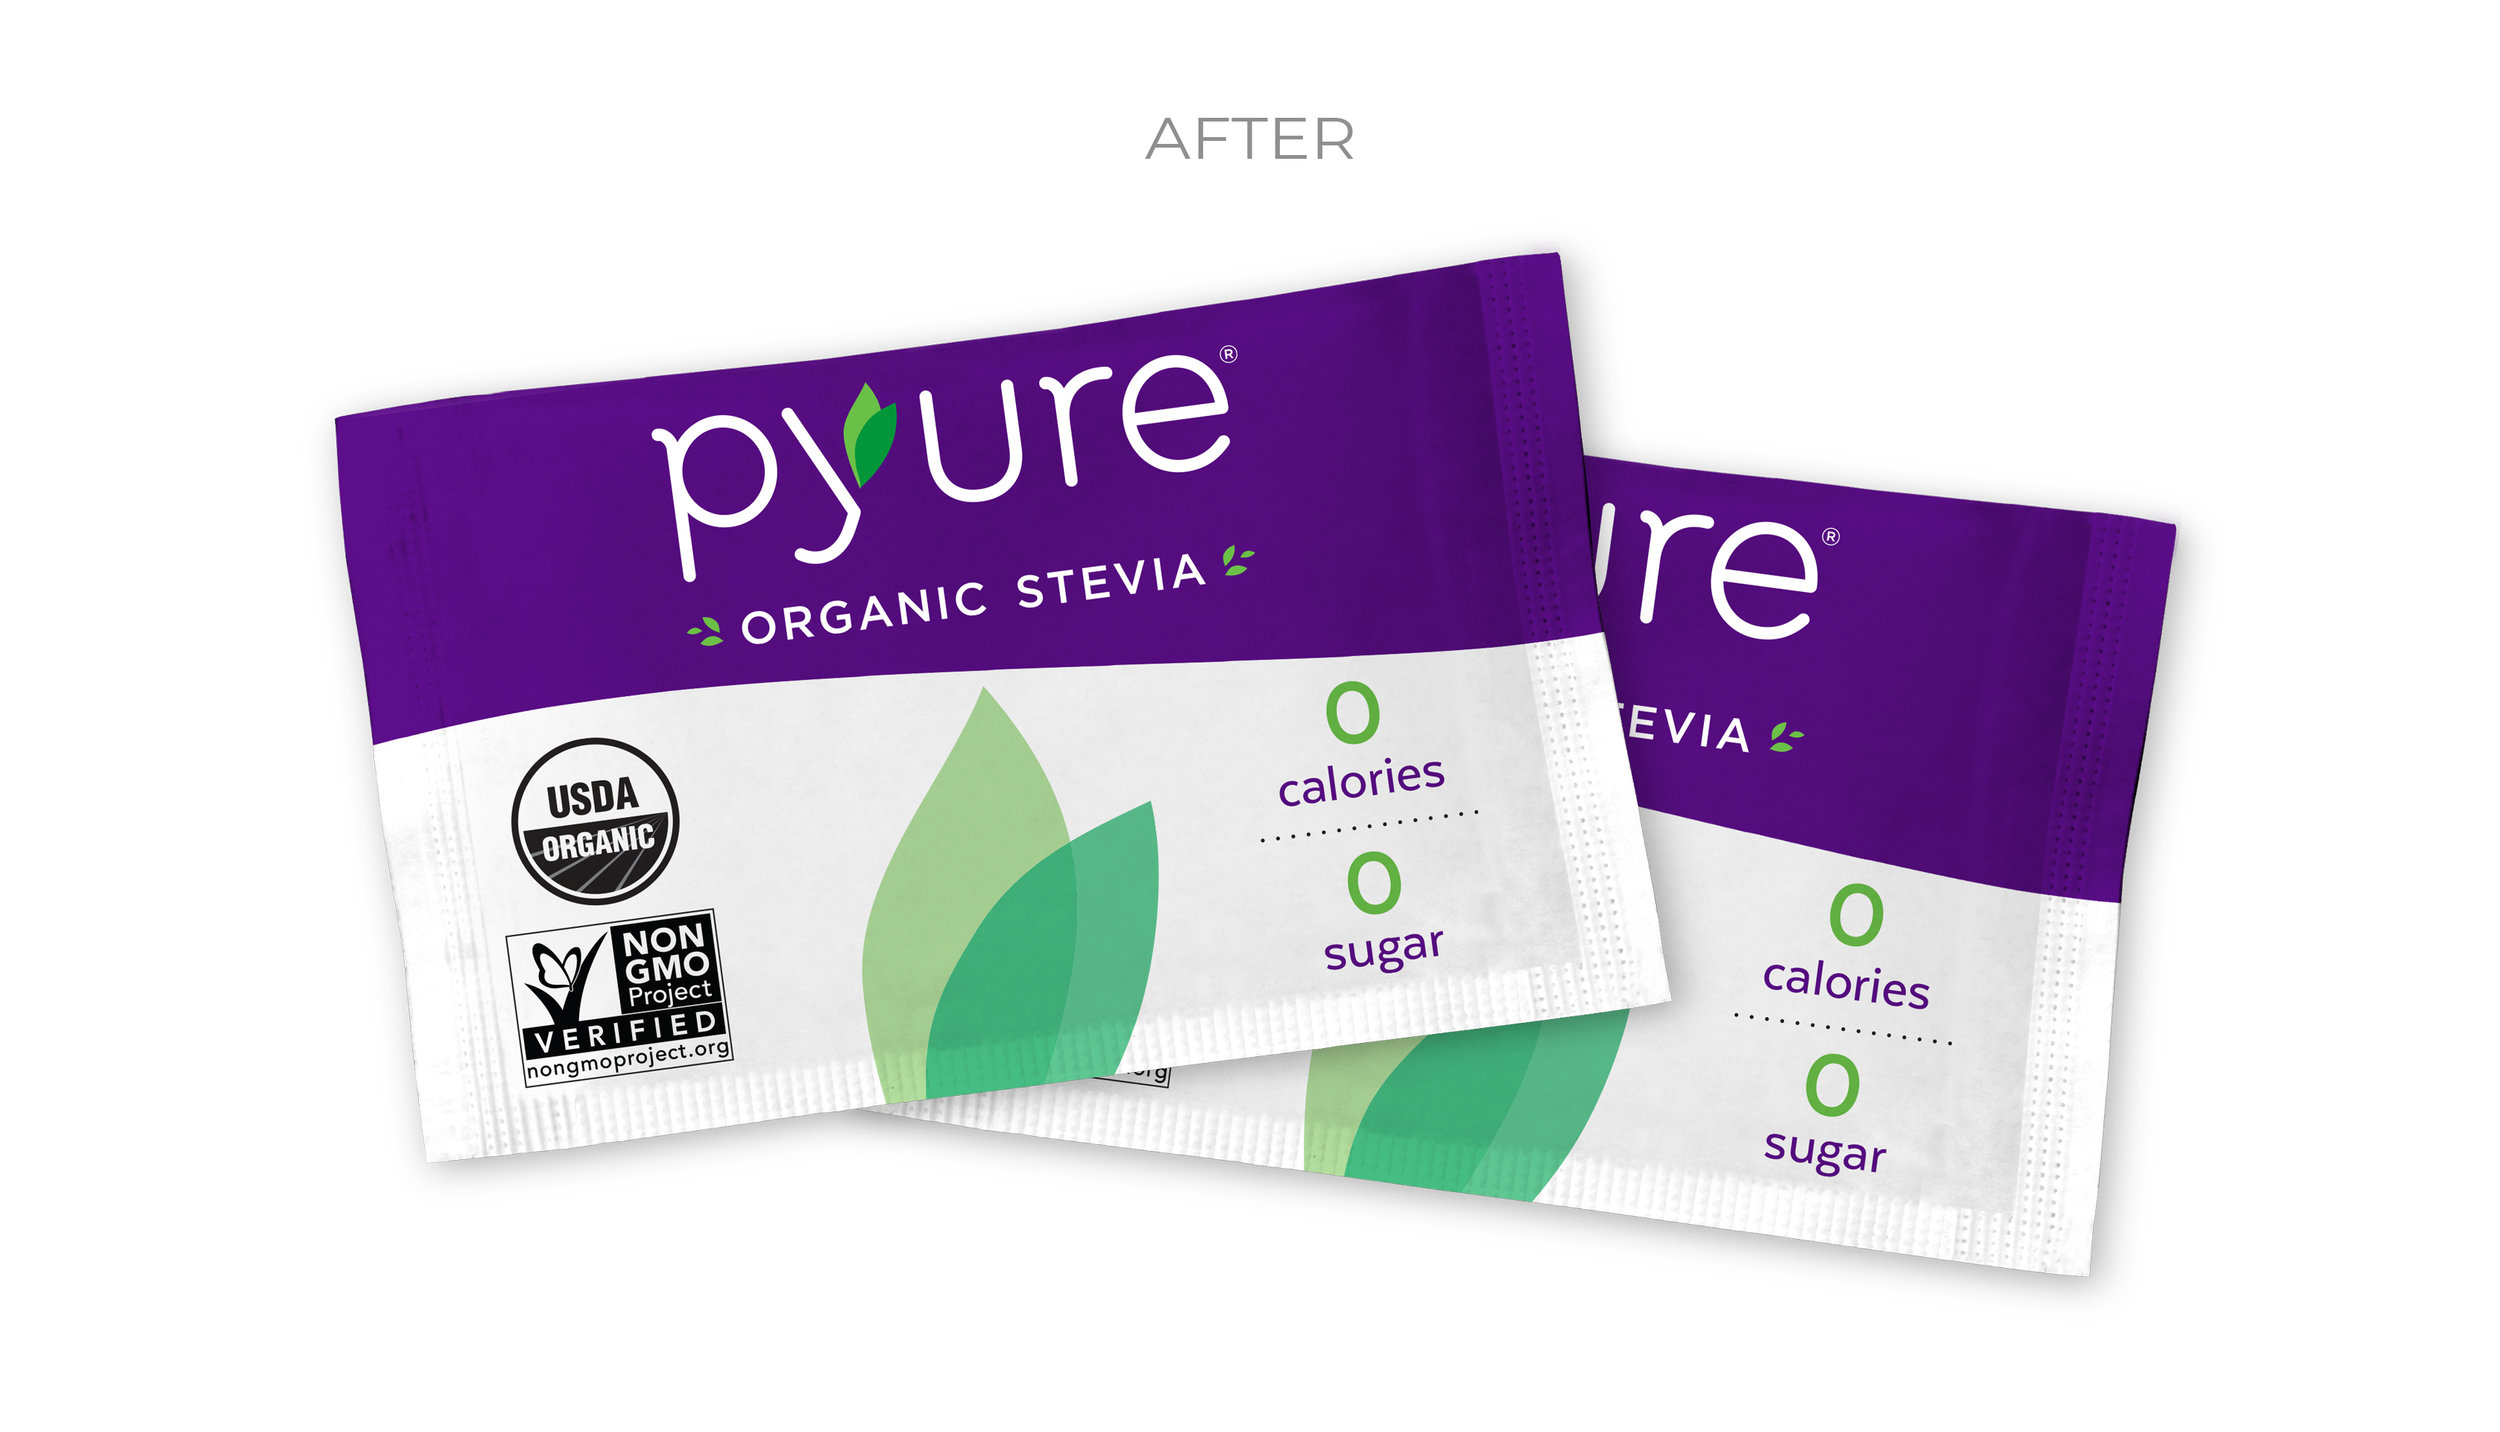 pyure packet compare after.jpg